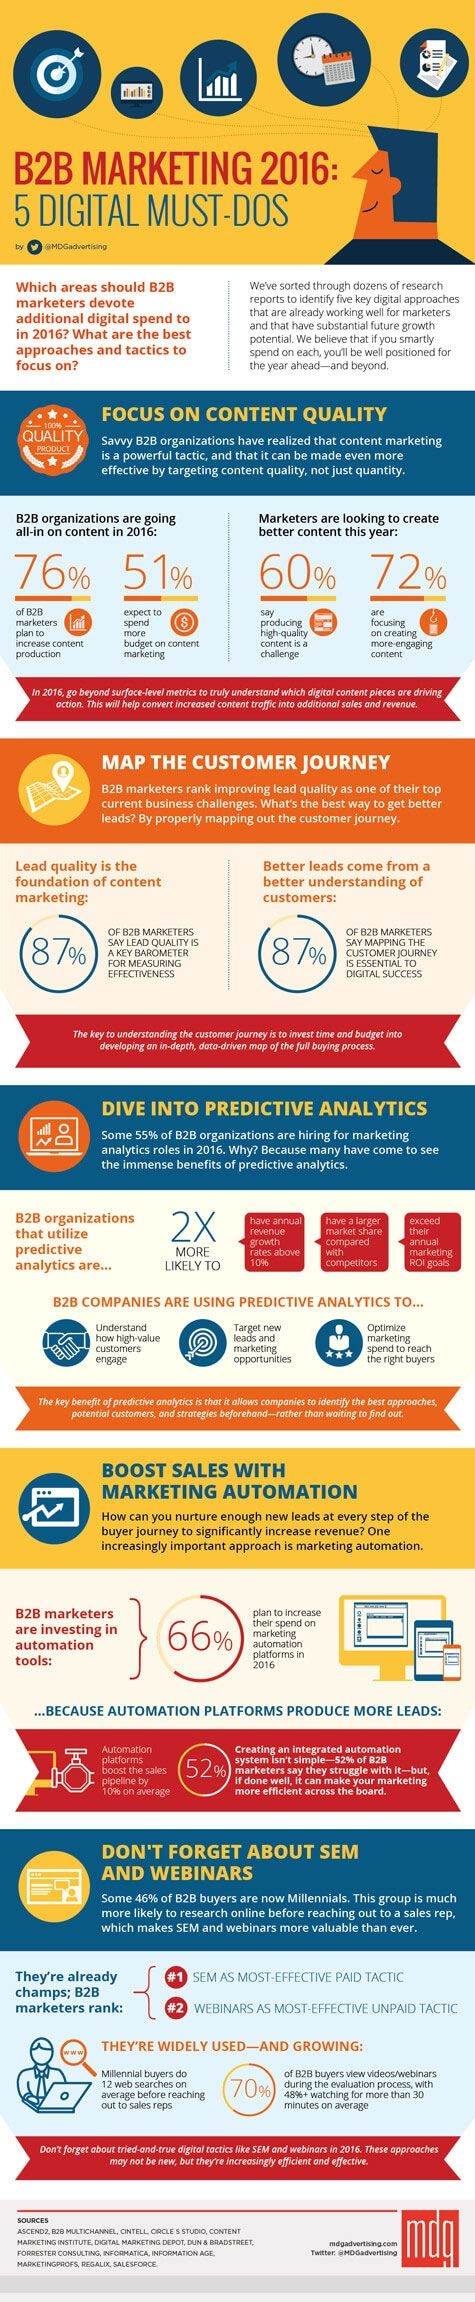 B2B Marketing 2016 - 5 Digital Must-Dos - Infographic of the week: Digital marketing